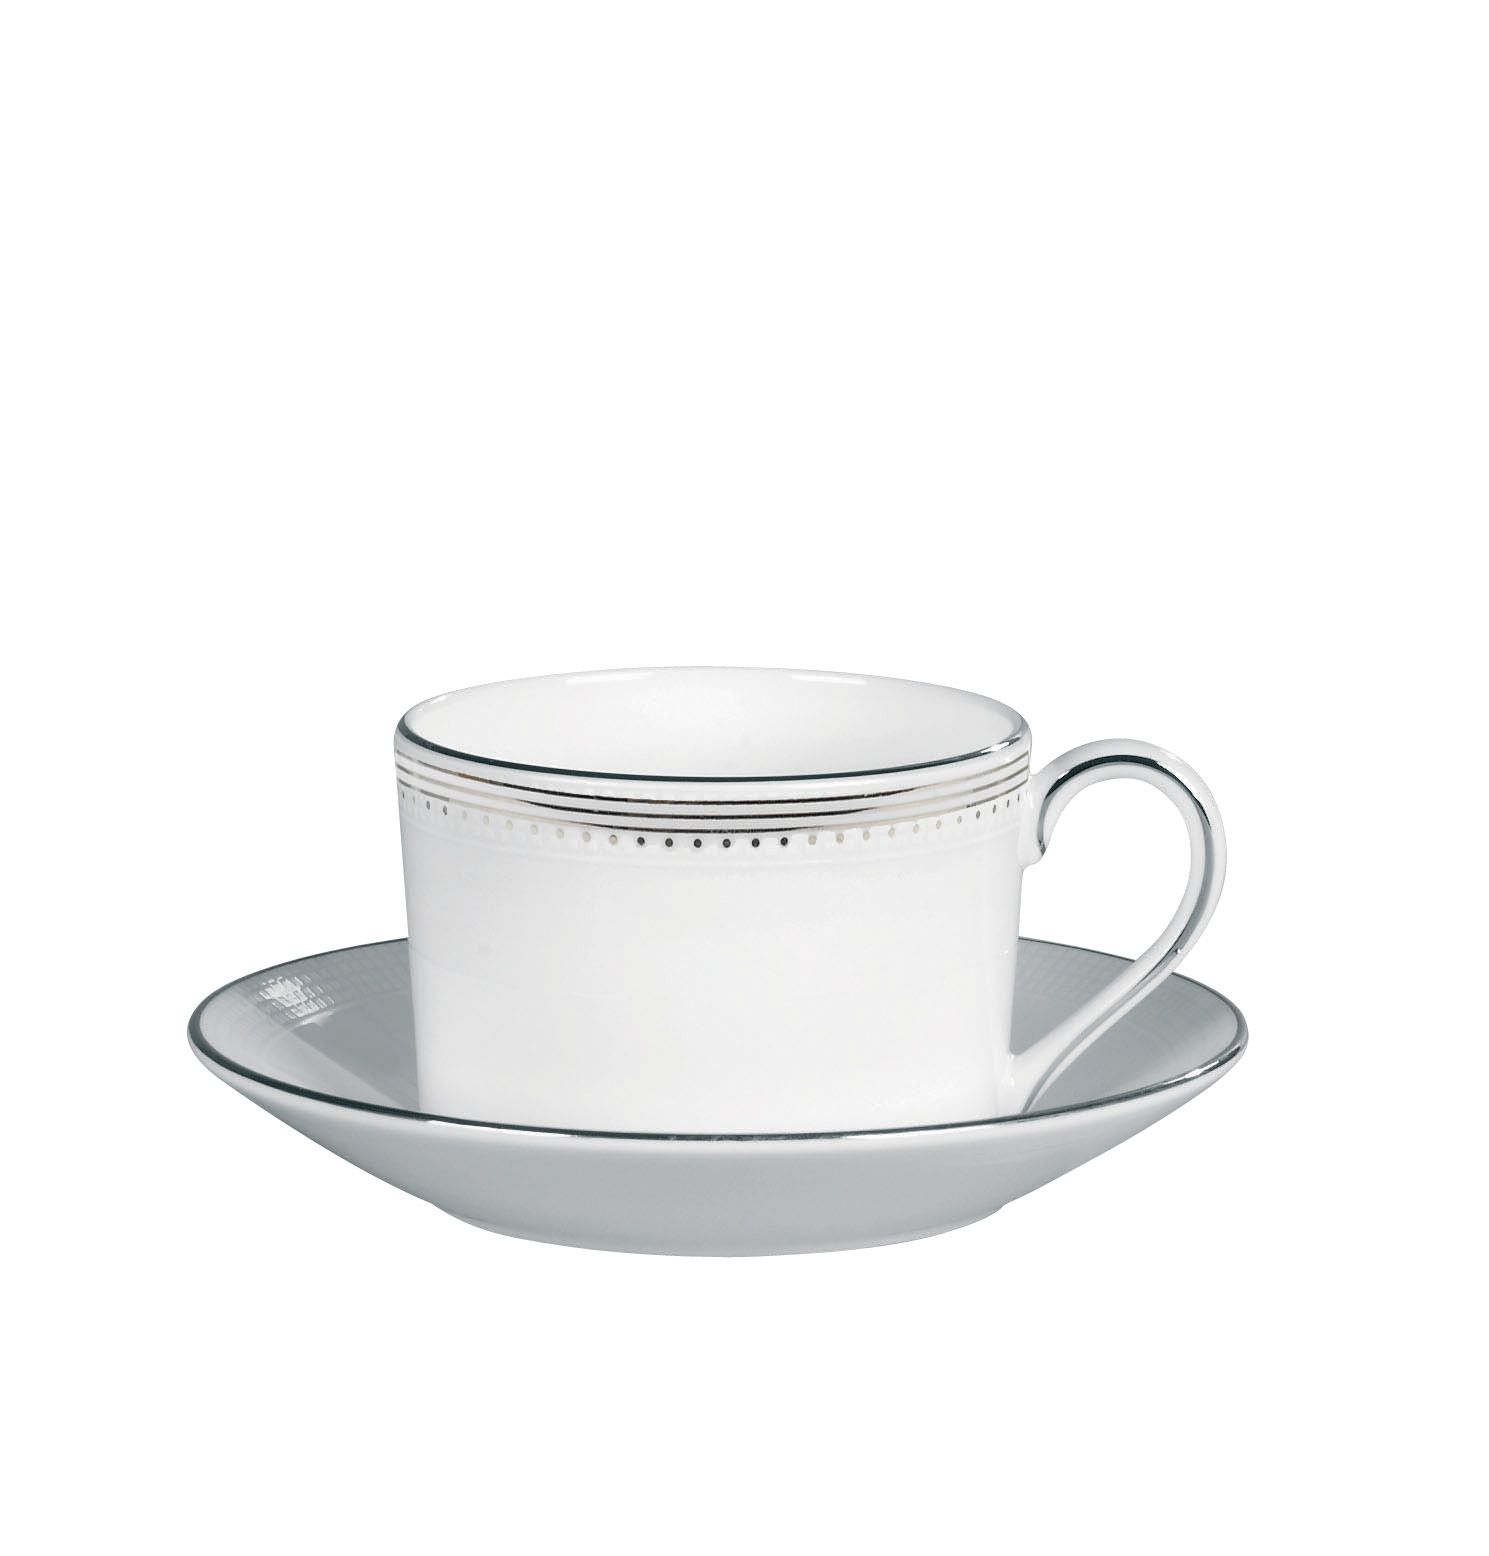 Grosgrain Imperial Teacup